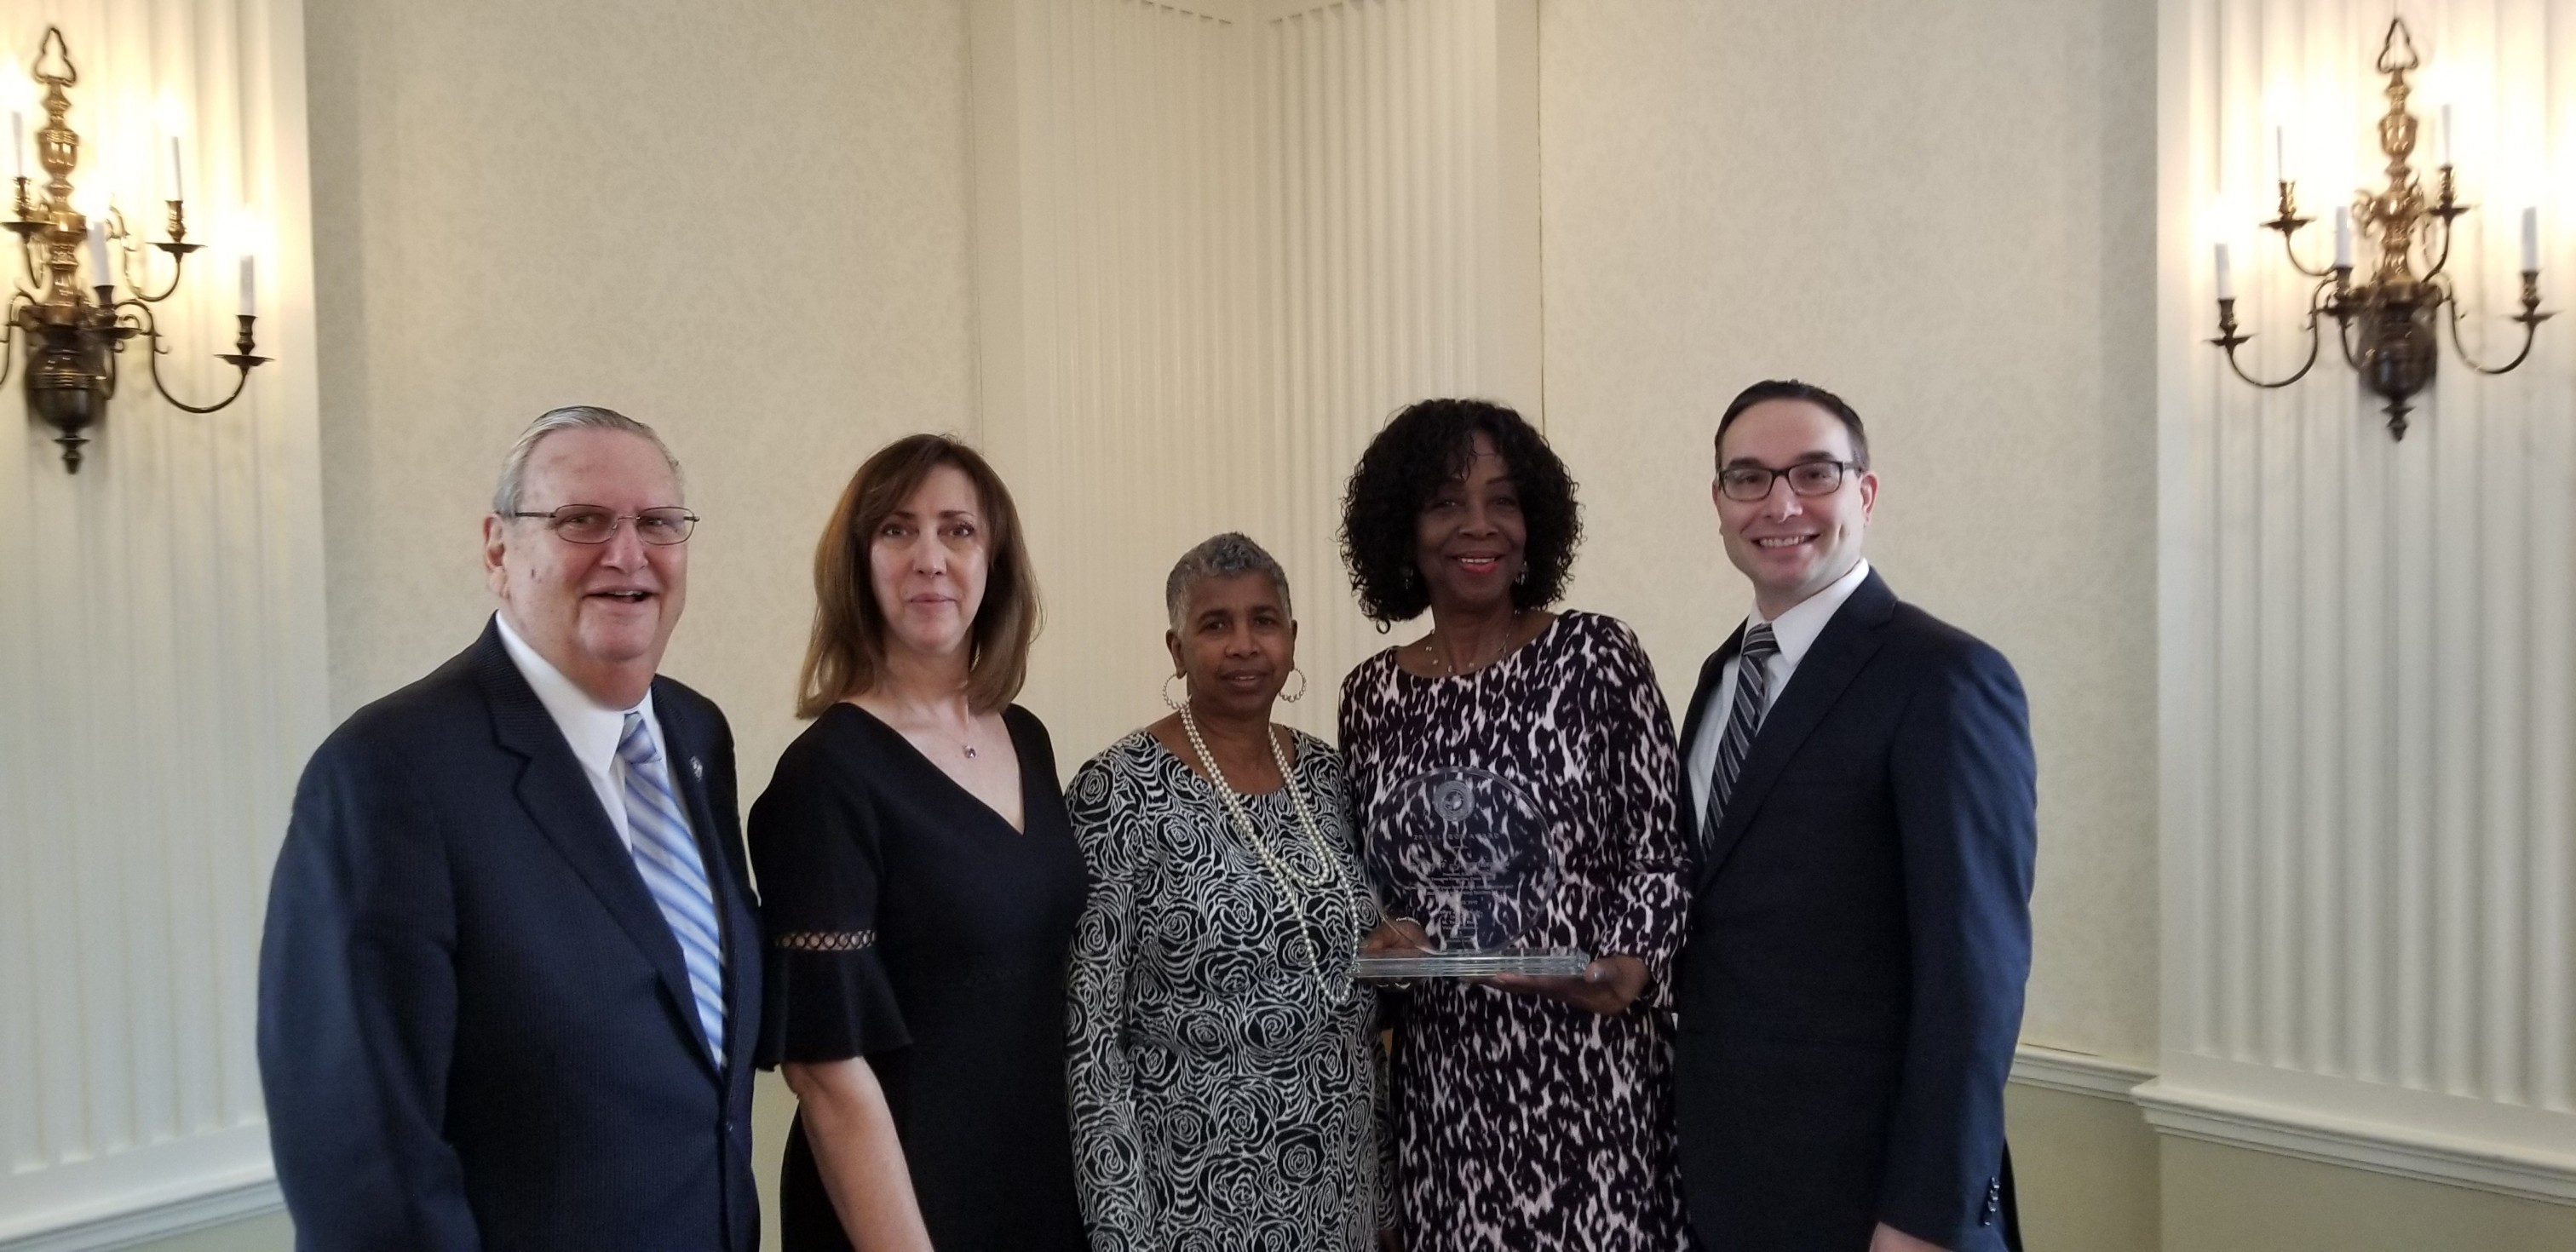 Our-own-1st-VP-Jacqui-Greadington-was-honored-this-morning-2.22.19-at-the-Essex-County-Democratic-Labor-Breakfast.-Anthony-Rosamilia-had-the-honor-of-introducing-her-1